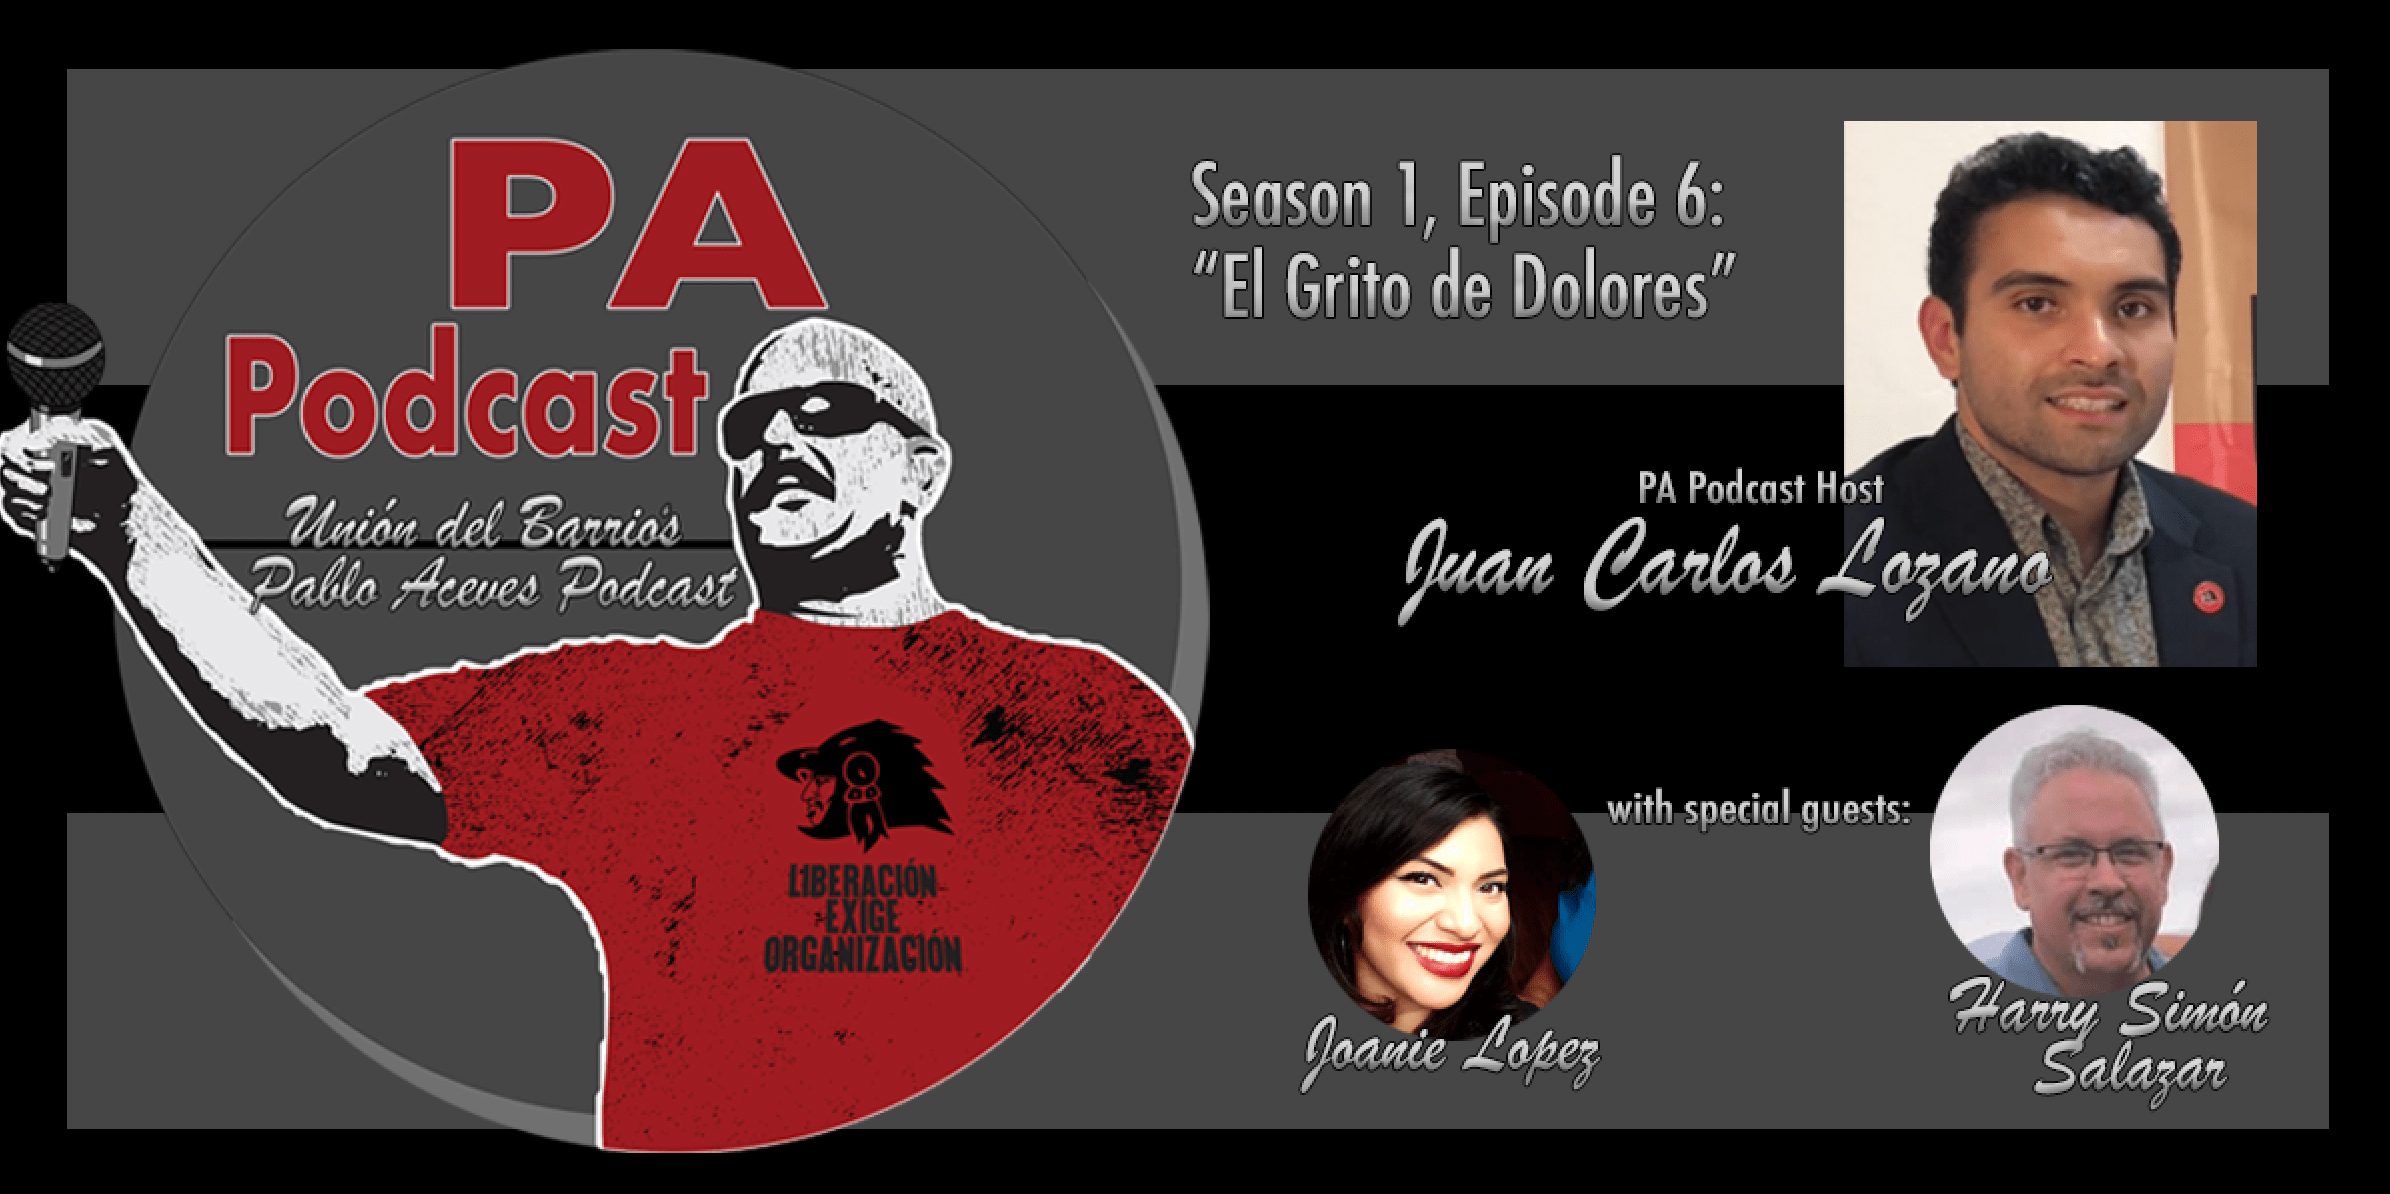 The PA Podcast with Juan Carlos Lozano: Season 1, Episode 6